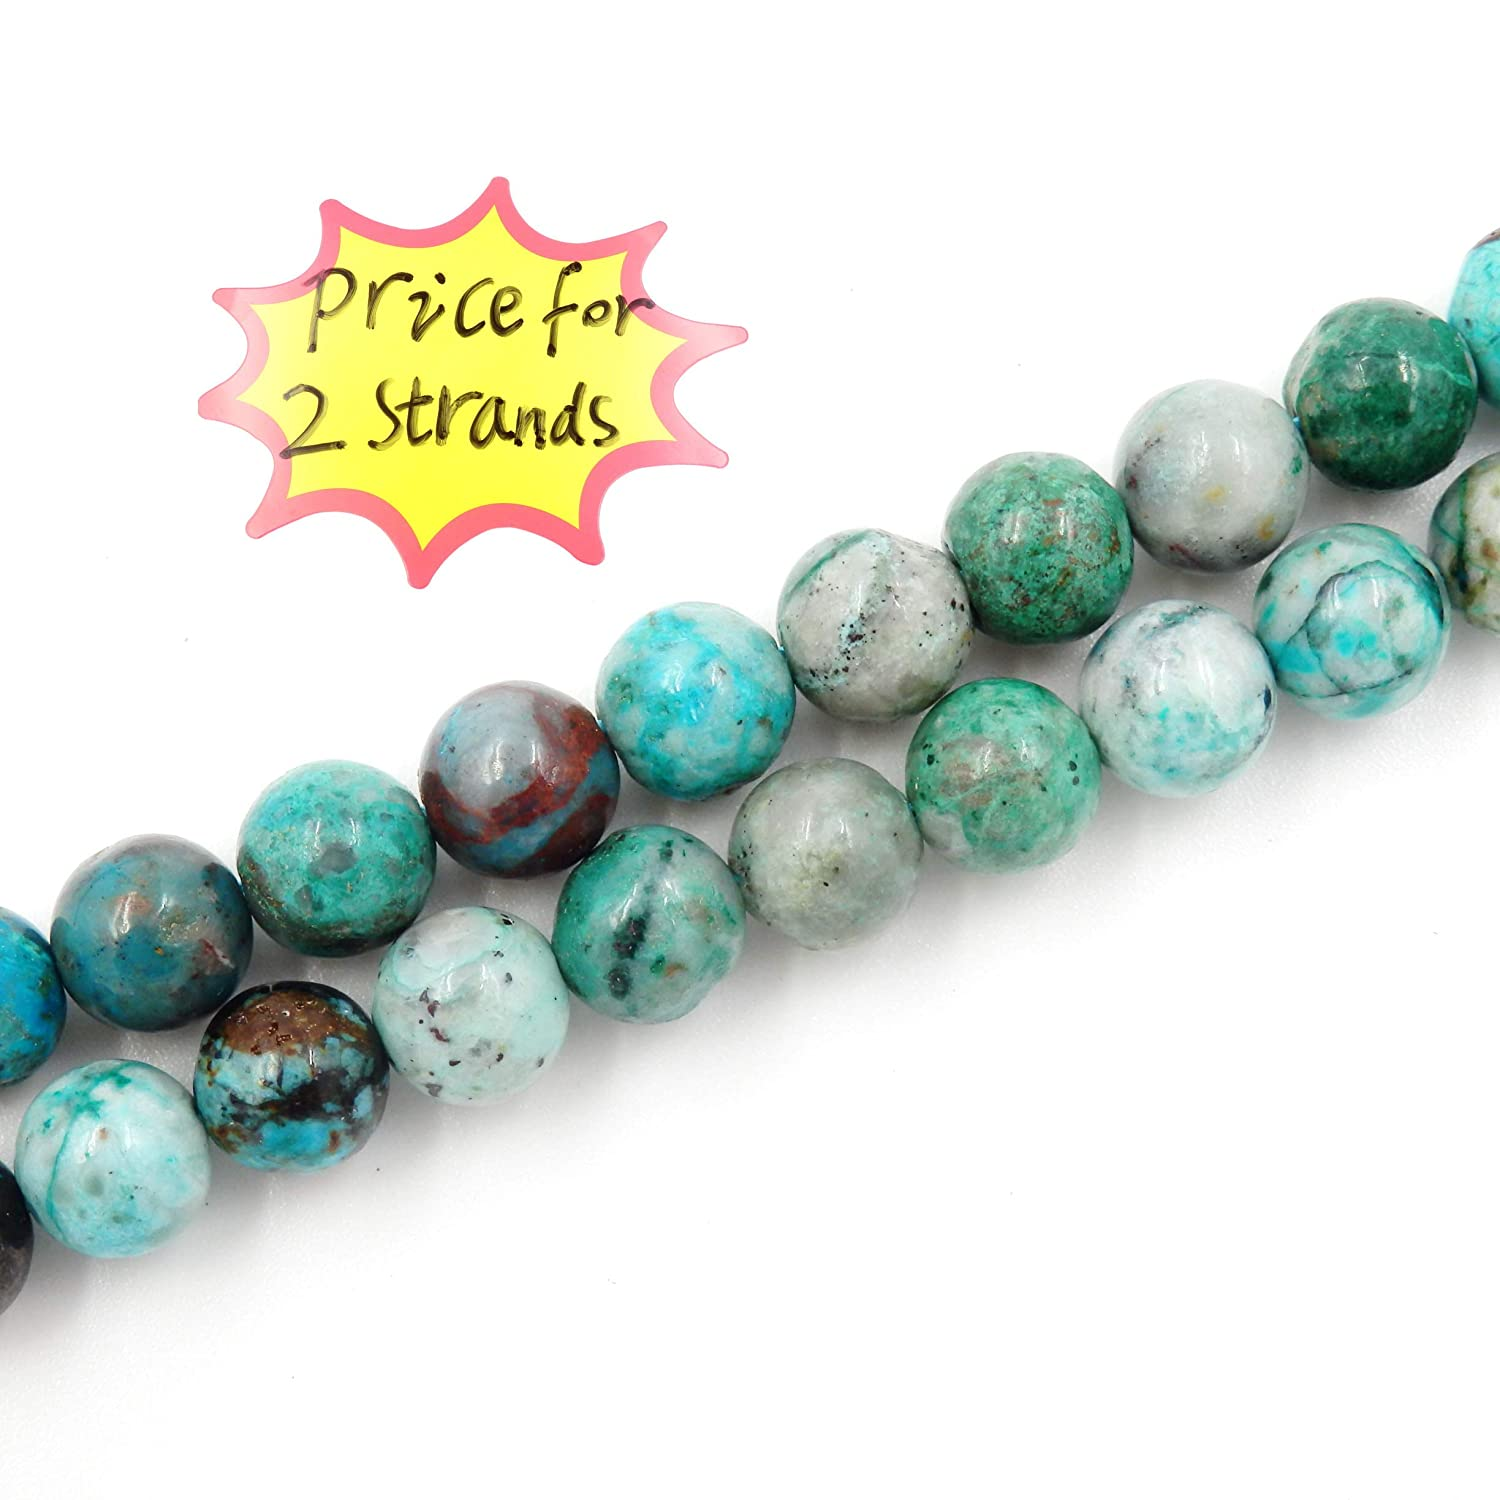 Blue Topaz, 4mm Sold per Bag 2 Strands Inside 100/% Natural AAA Grade Precious Gemstone Beads for Jewelry Making